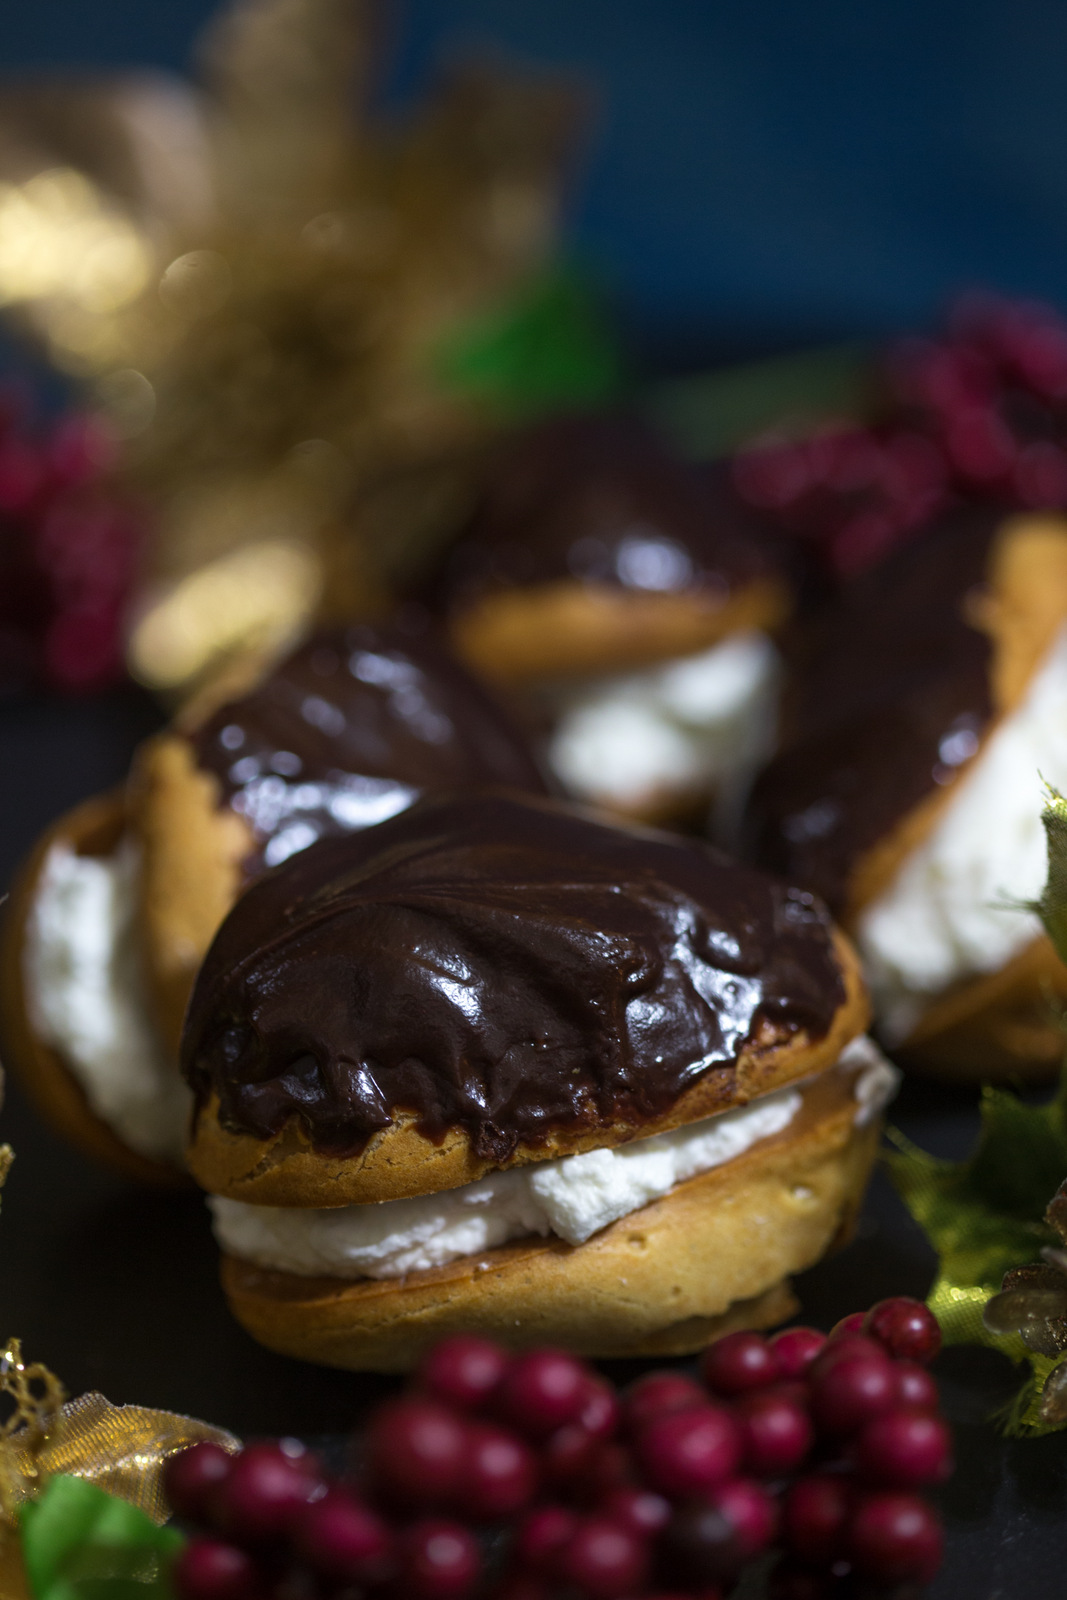 eclair, chocolate eclair, eclair recipe, christmas in the park san jose, holiday recipes, french eclair, how to make chocolate eclair, food photography, food blog